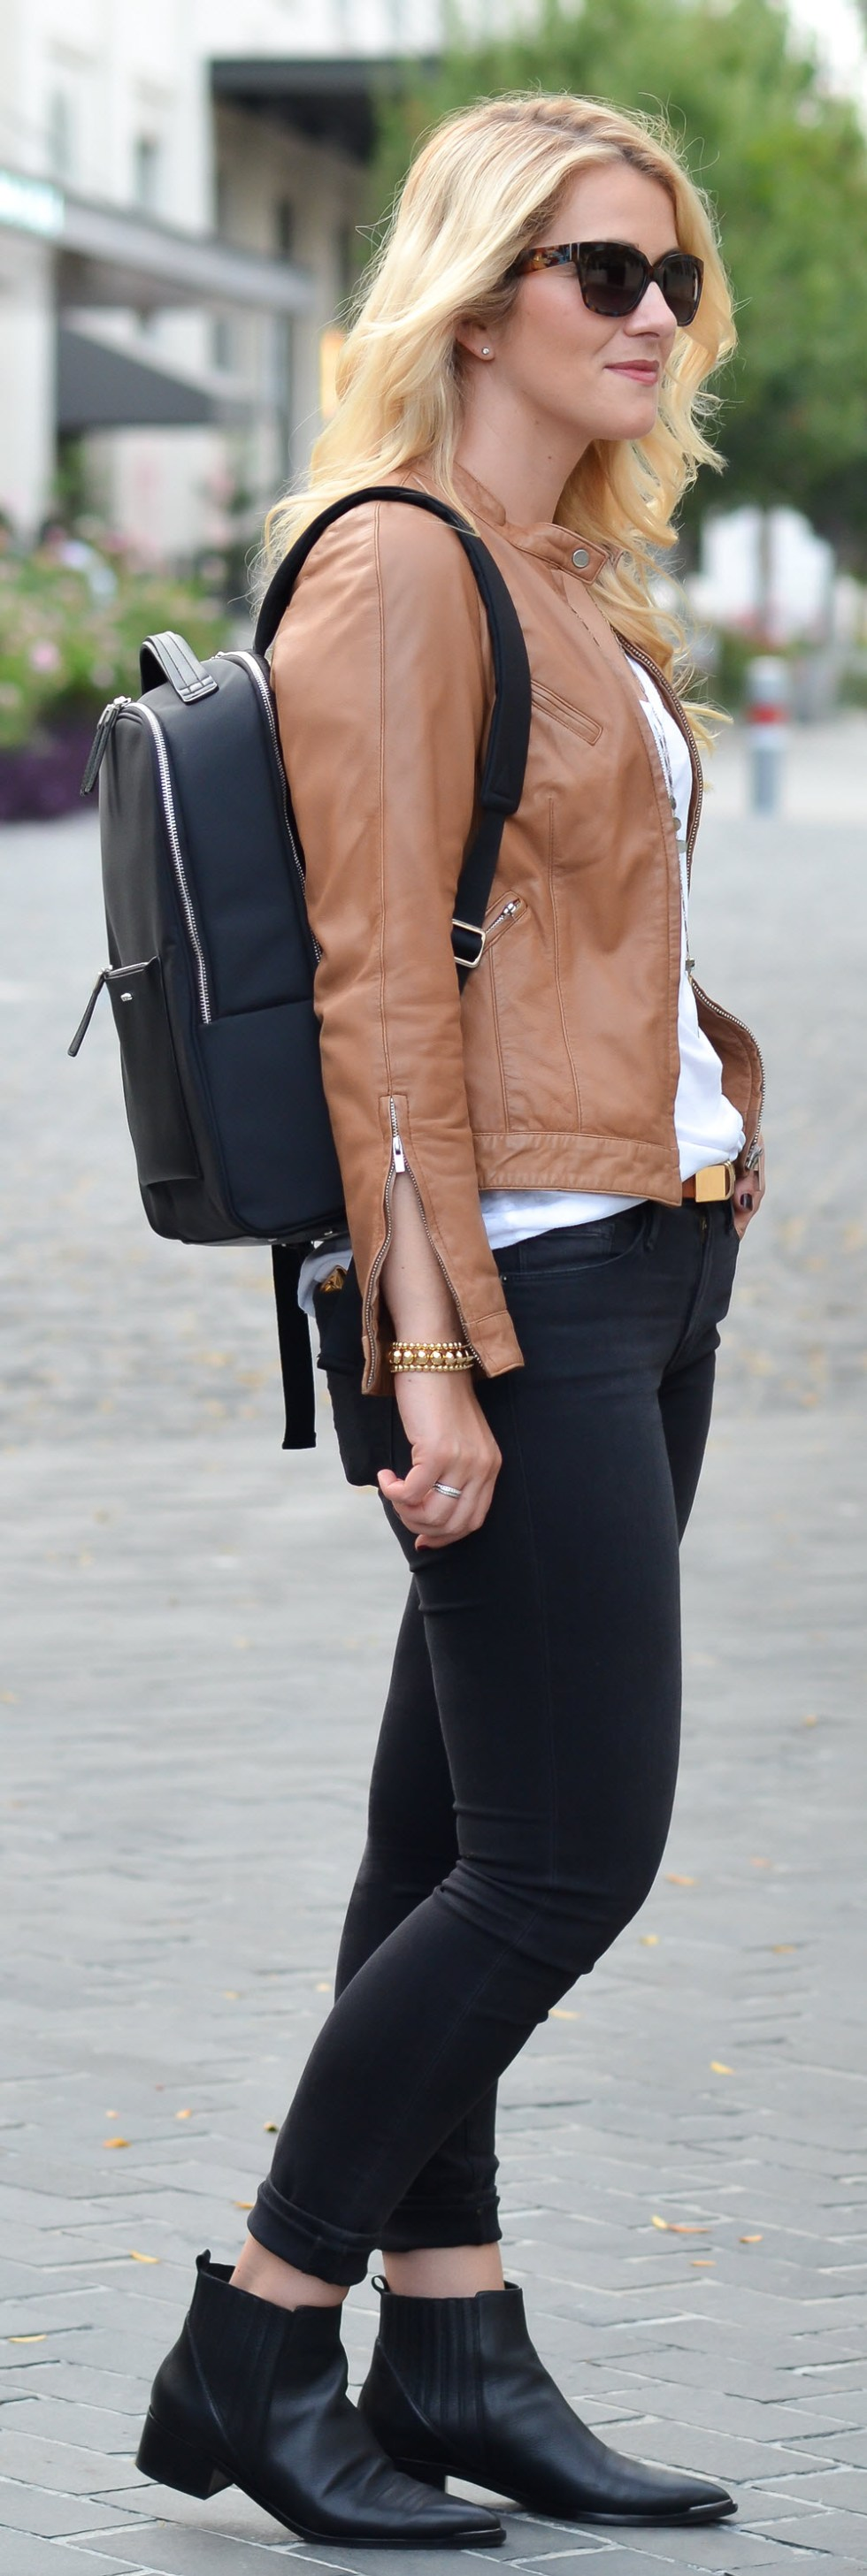 Best Travel Work Bags for Stylish Women. Chic Work Laptop Backpack - Samsonite Zalia Backpack Review